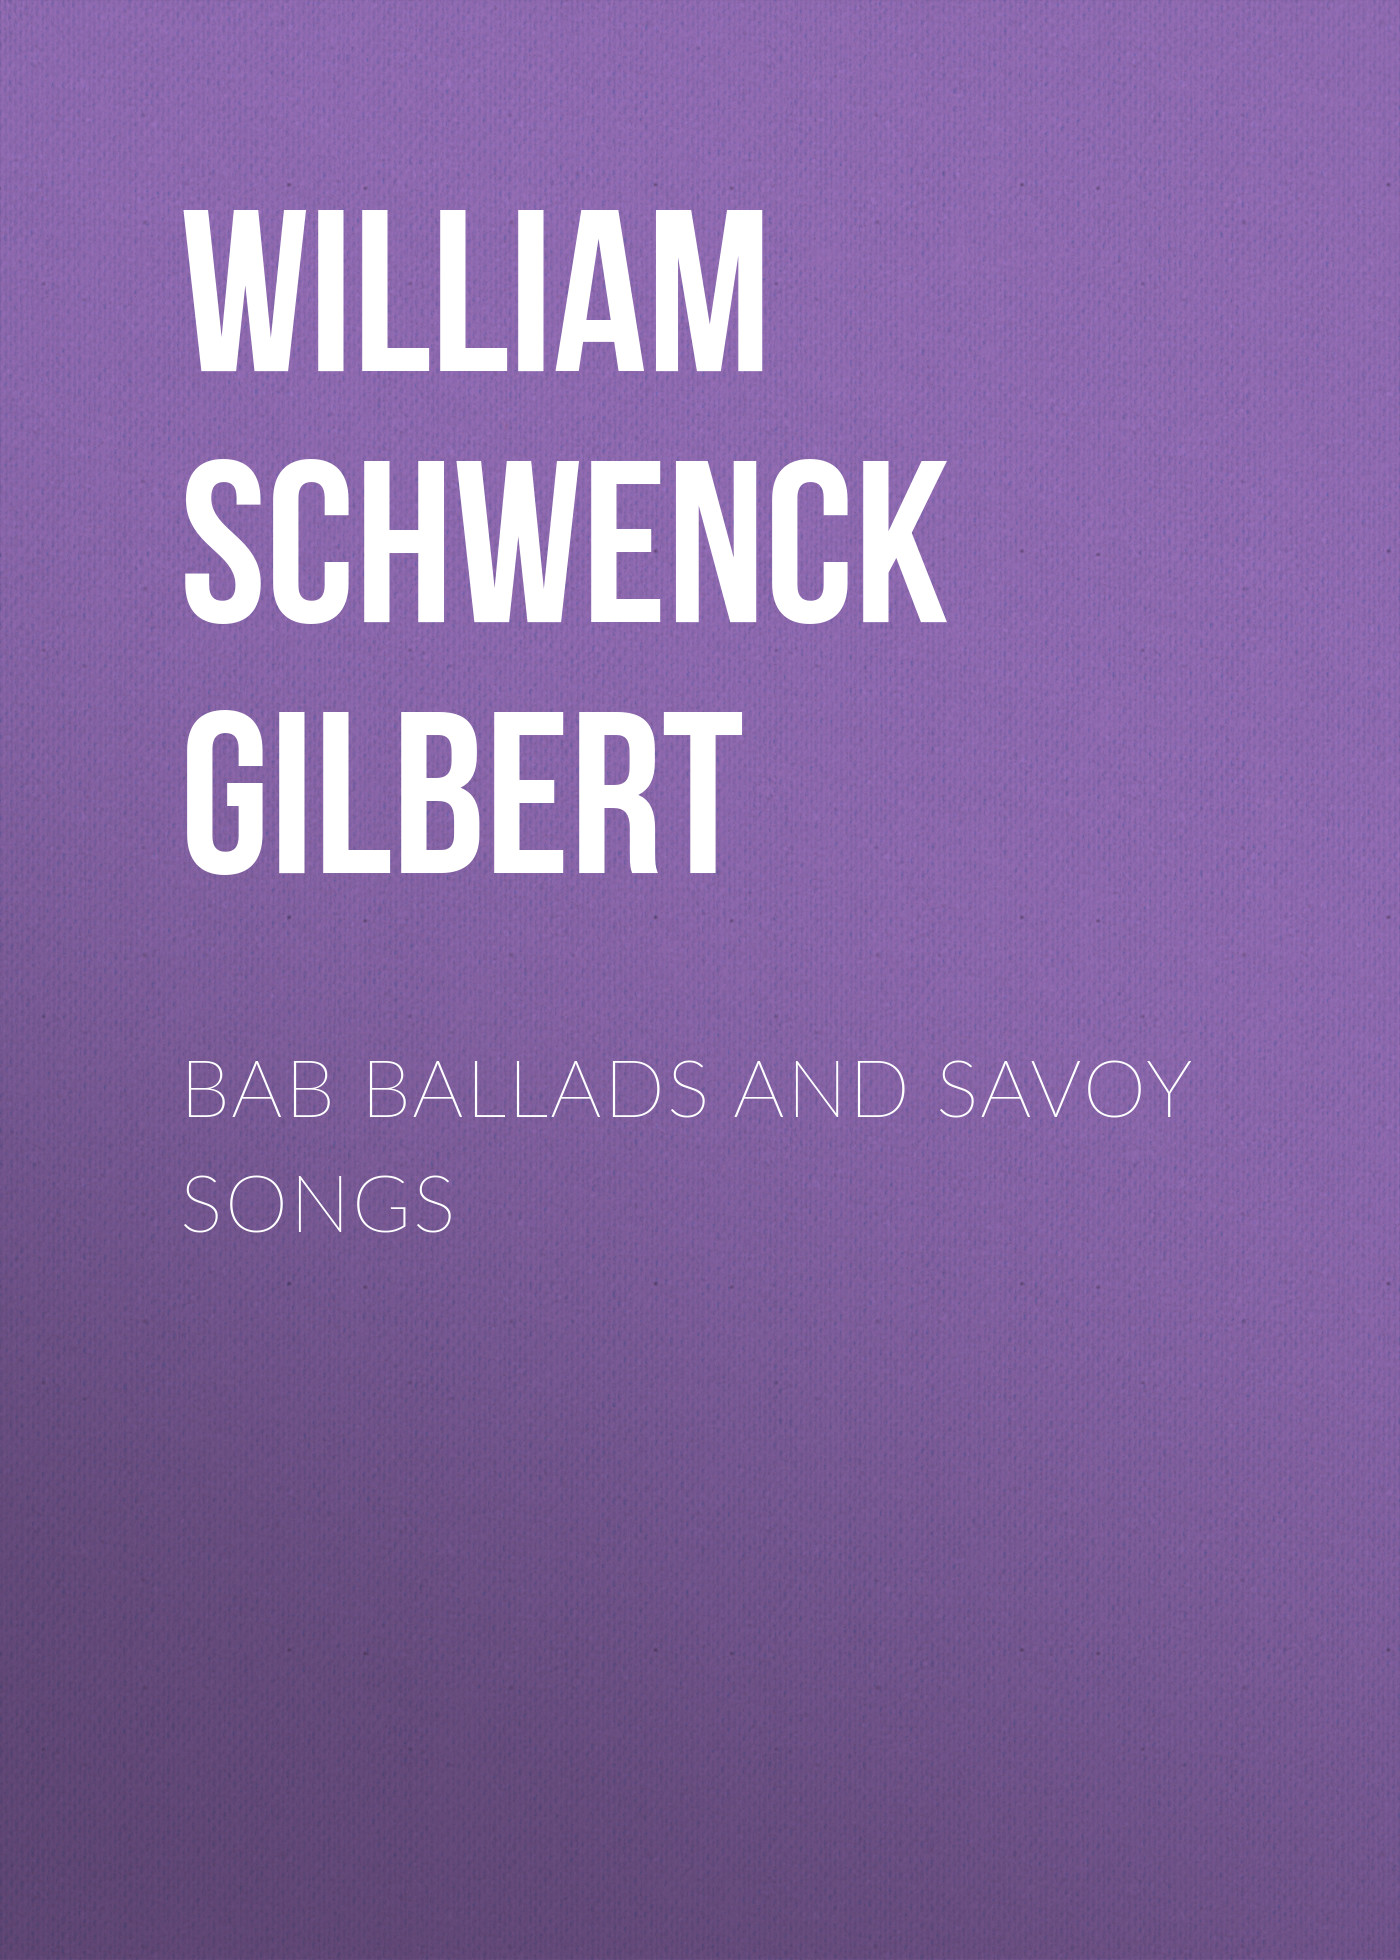 William Schwenck Gilbert Bab Ballads and Savoy Songs стоимость